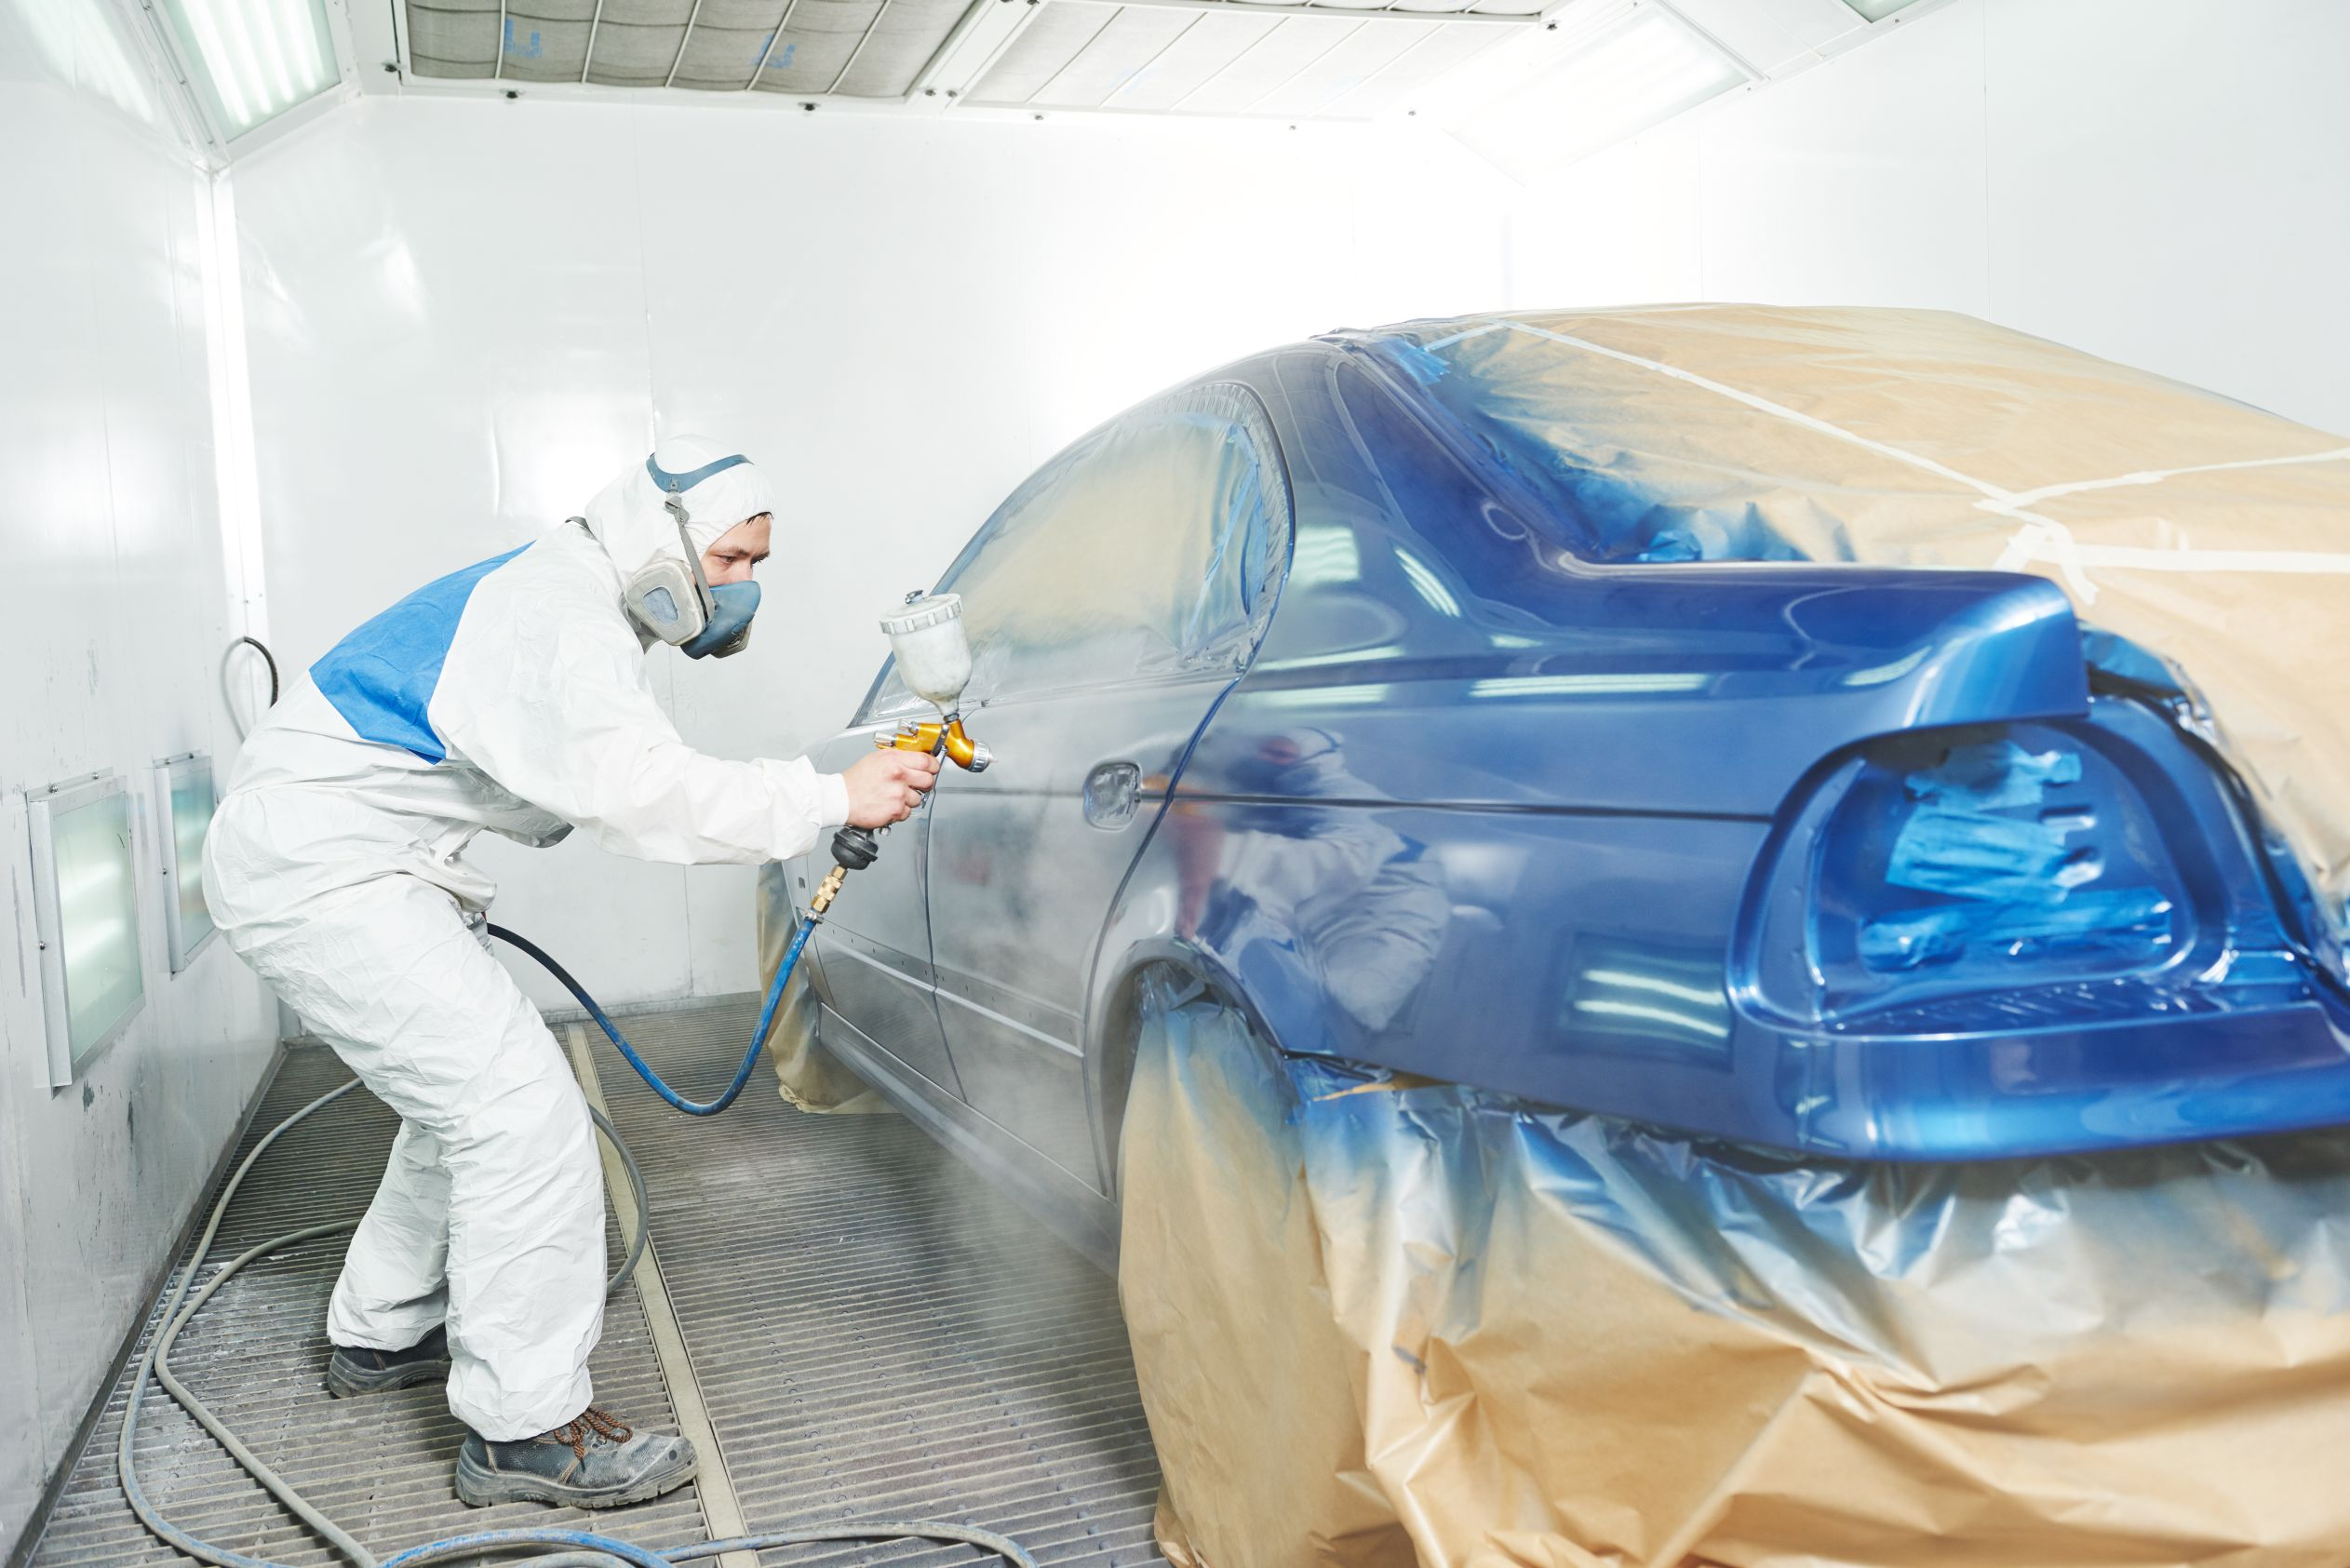 How to Find The Best Do It Yourself Auto Painting Project | SmartGuy